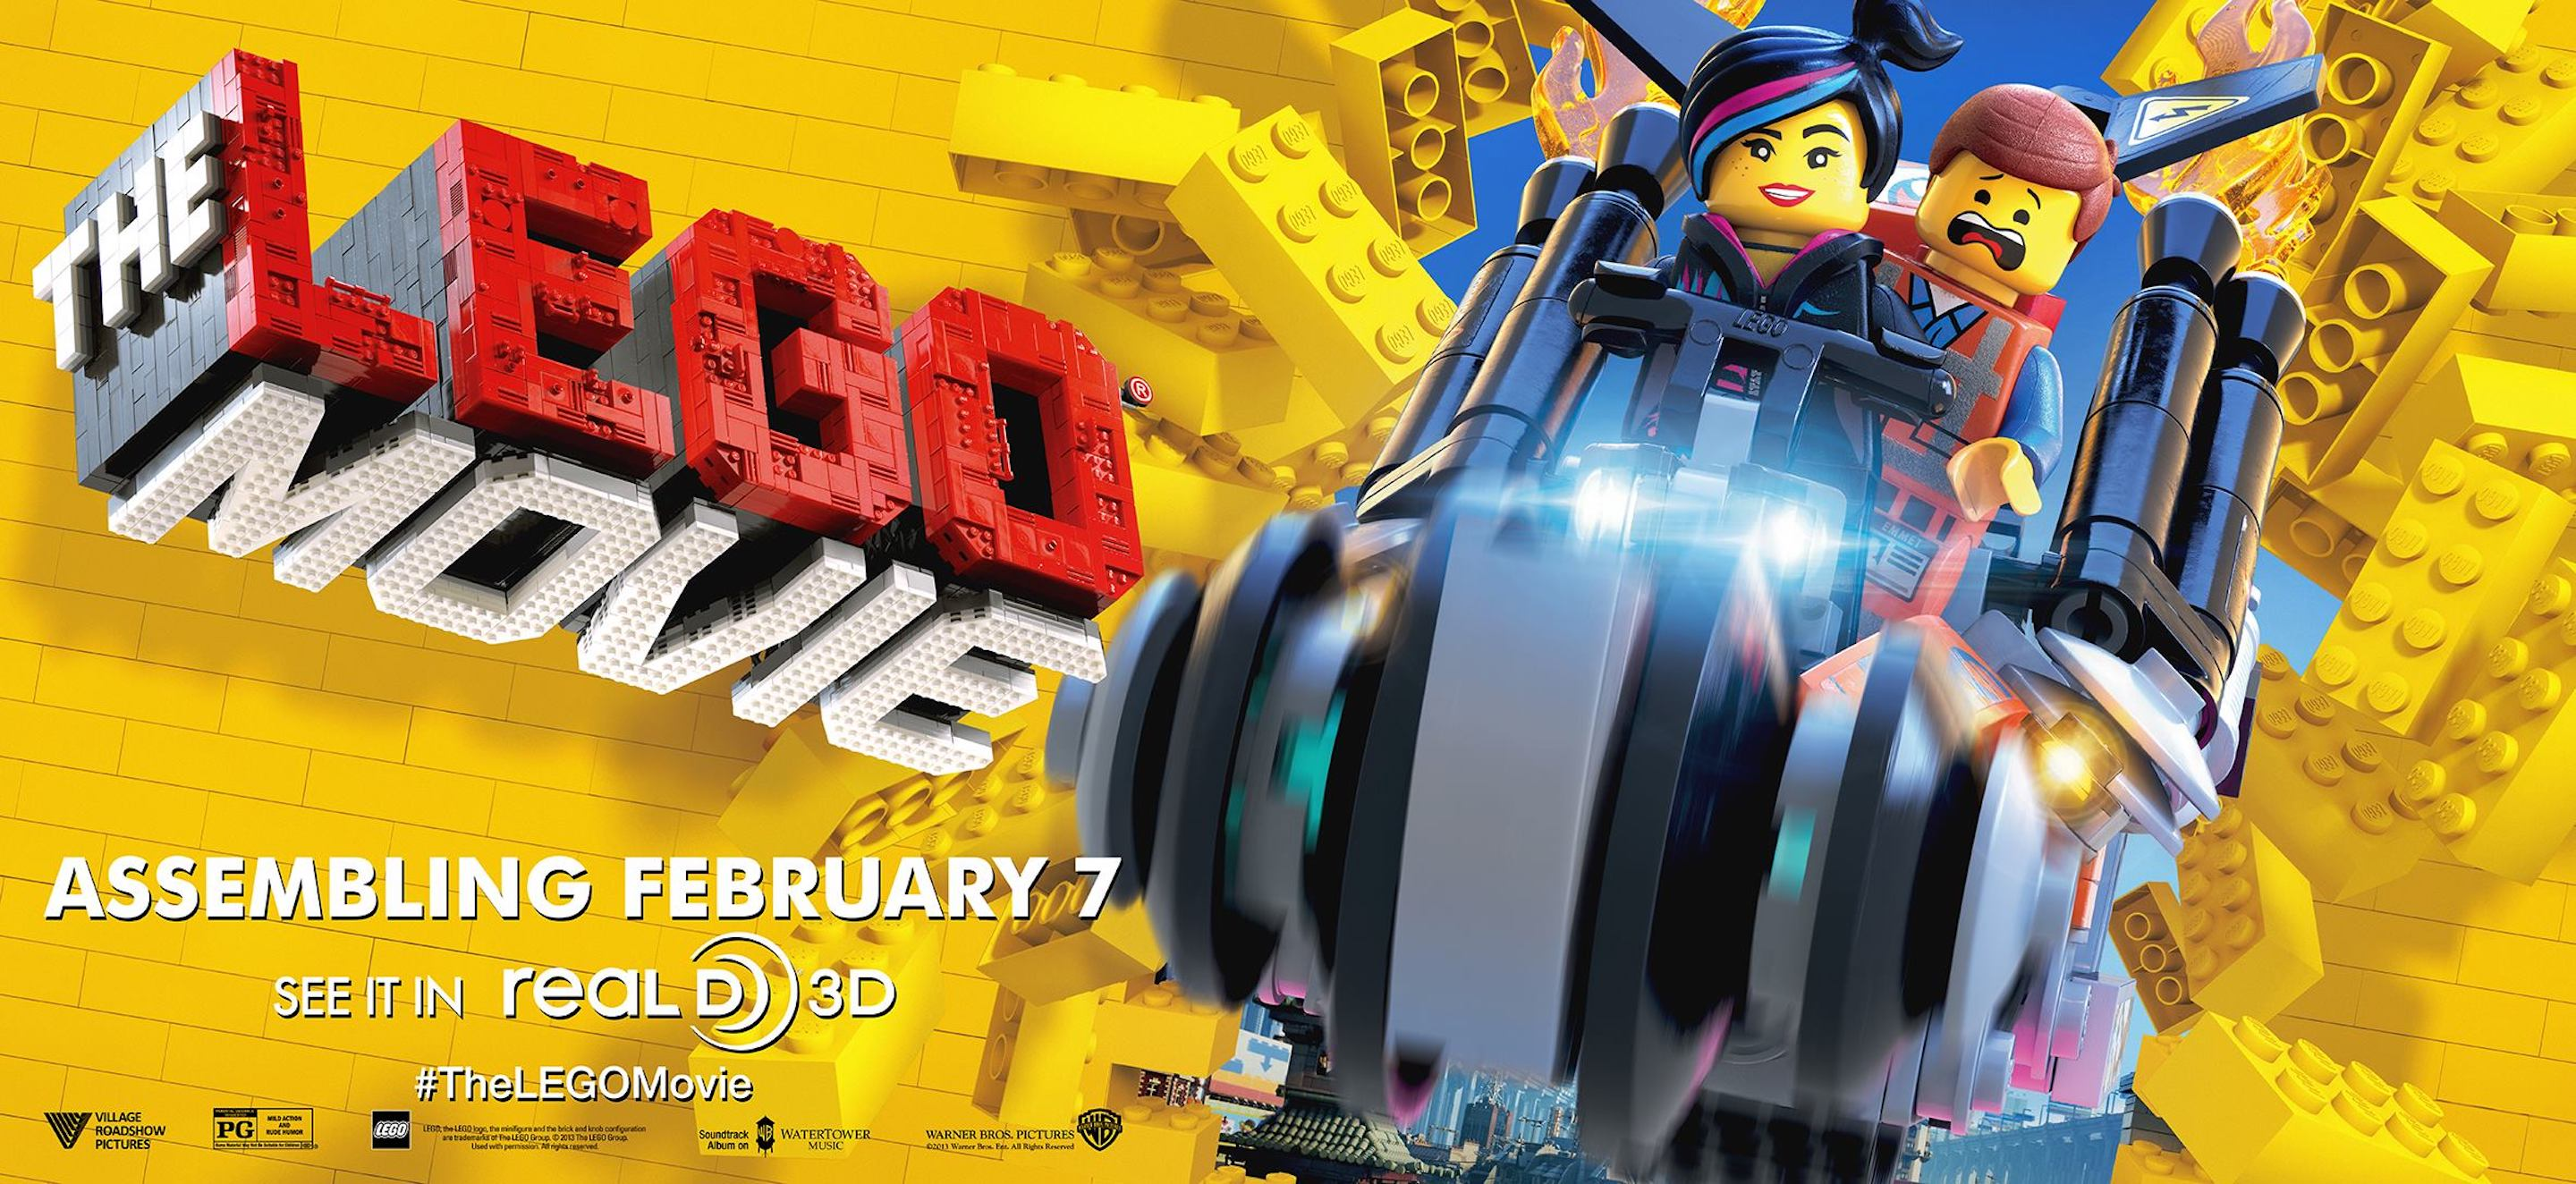 lego-movie-banner.jpg